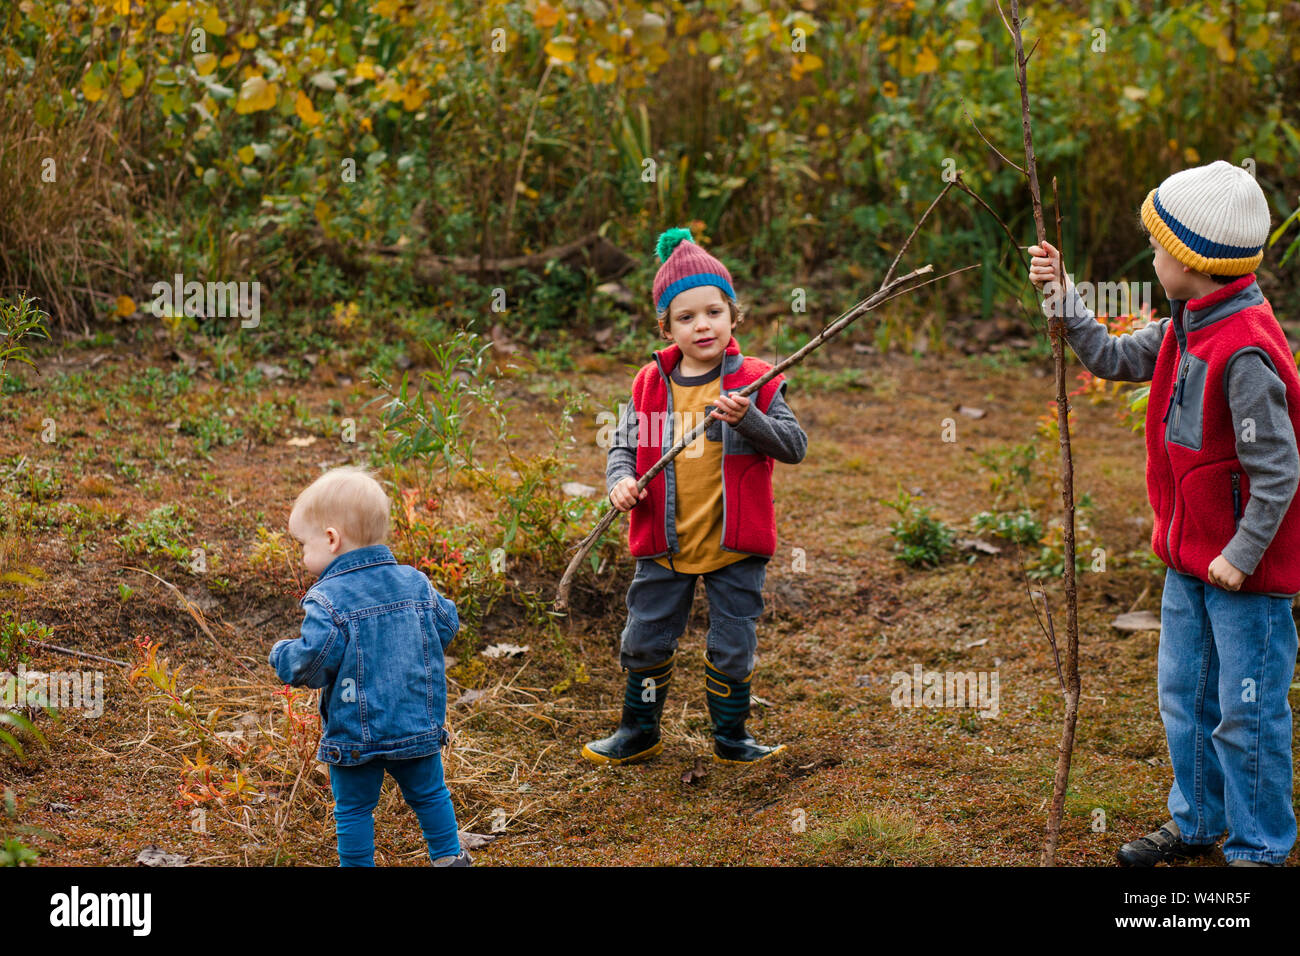 three small boys play together in a prairie in autumn Stock Photo